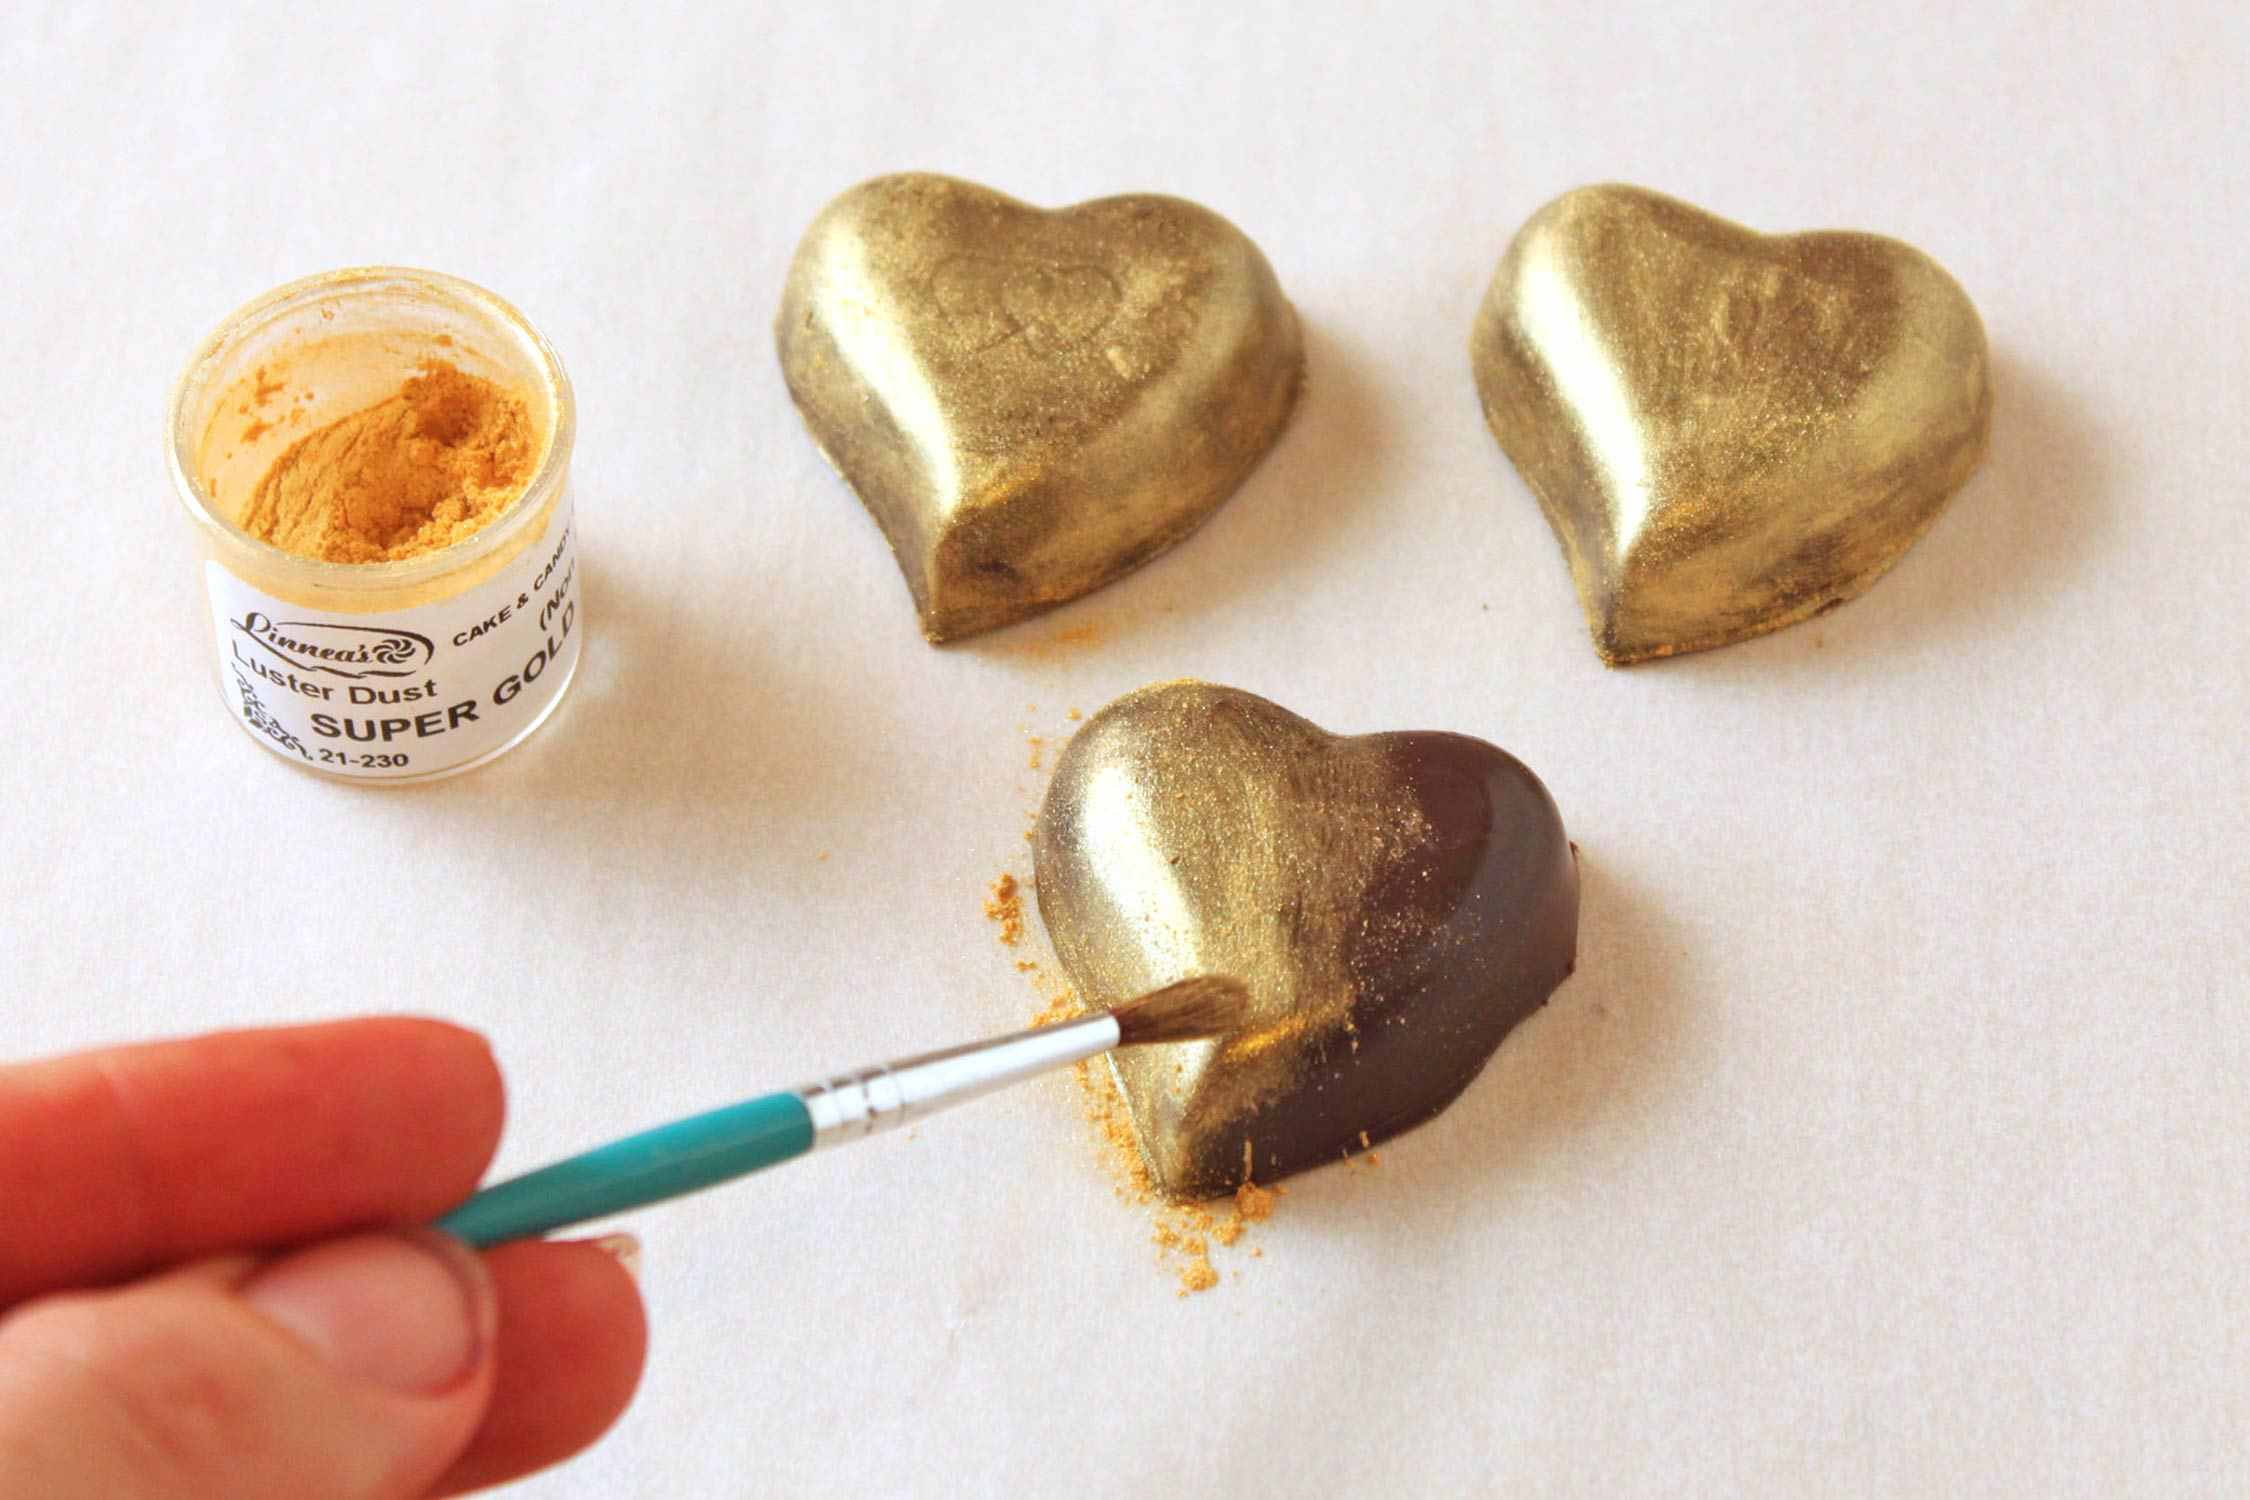 Painting chocolates with luster dust